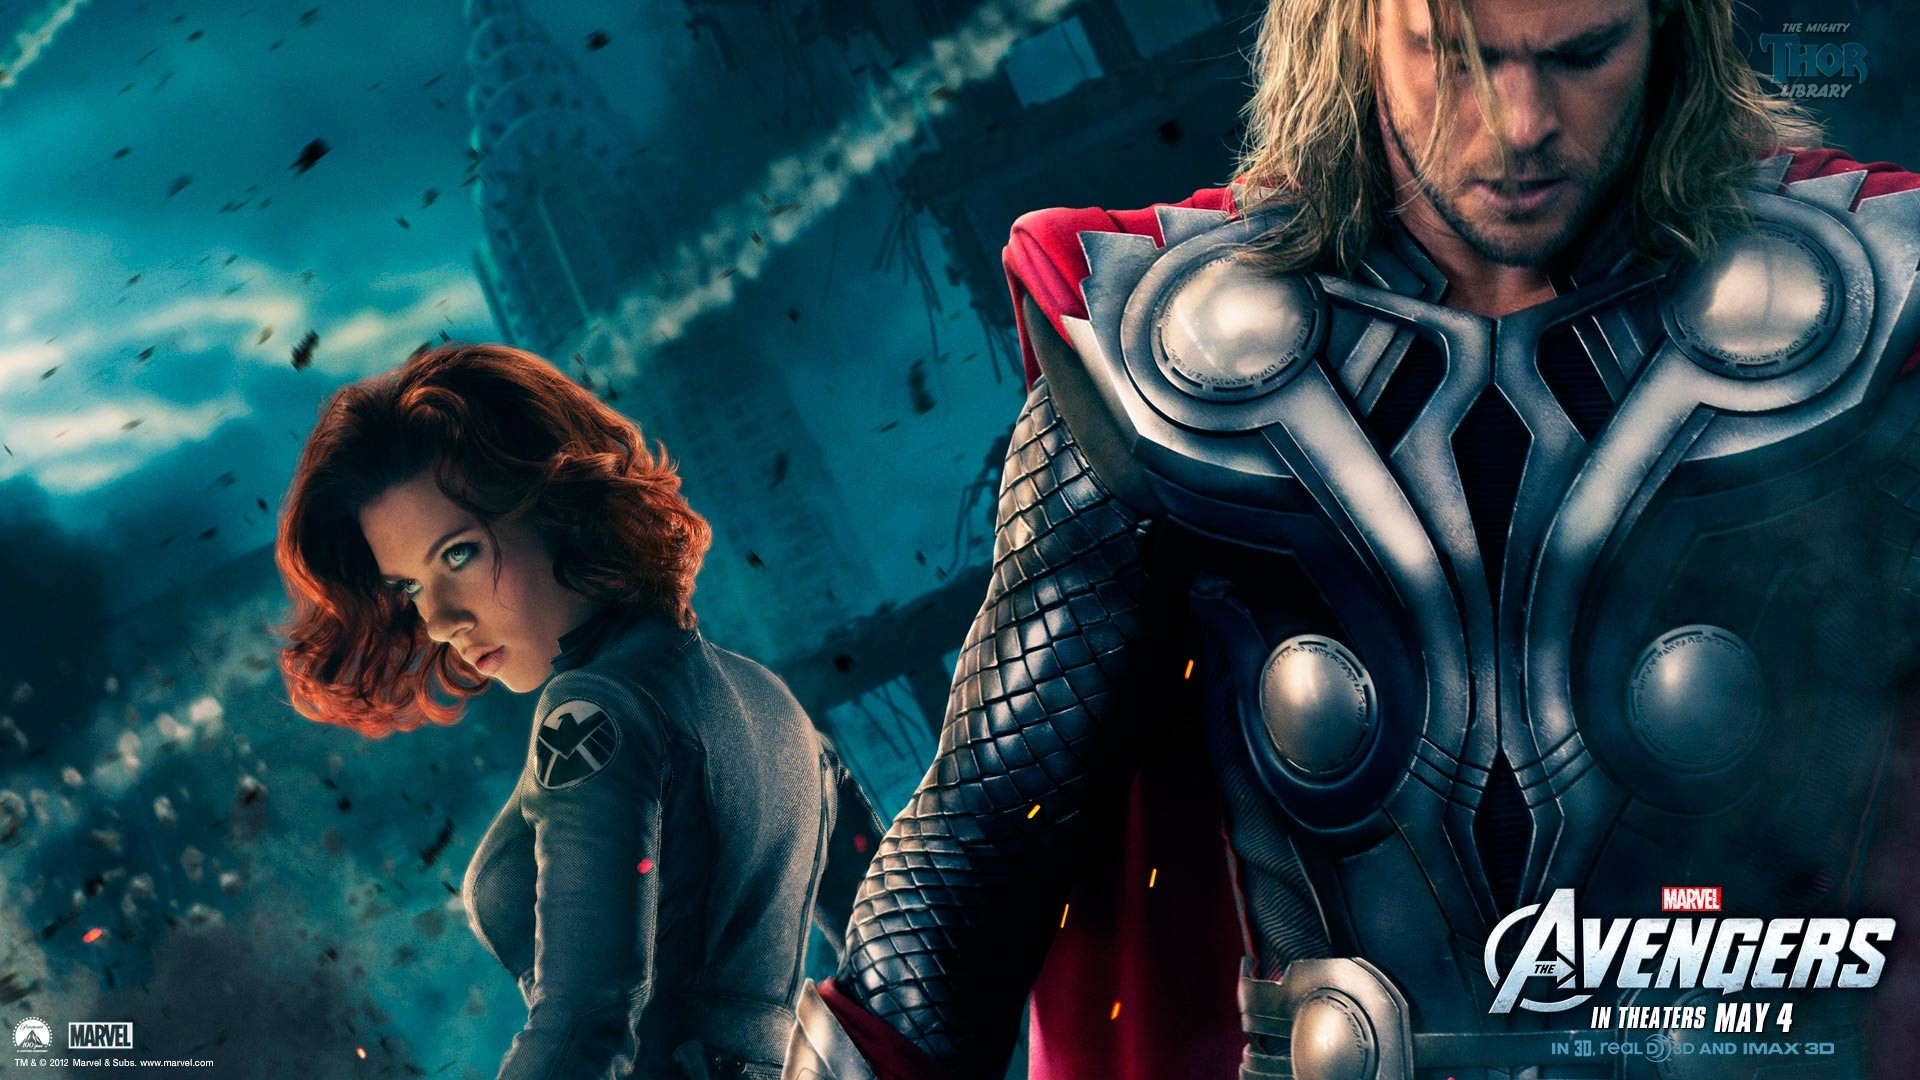 Thor and Black Widow from the Avengers movie (1920 x 1080) wallpaper